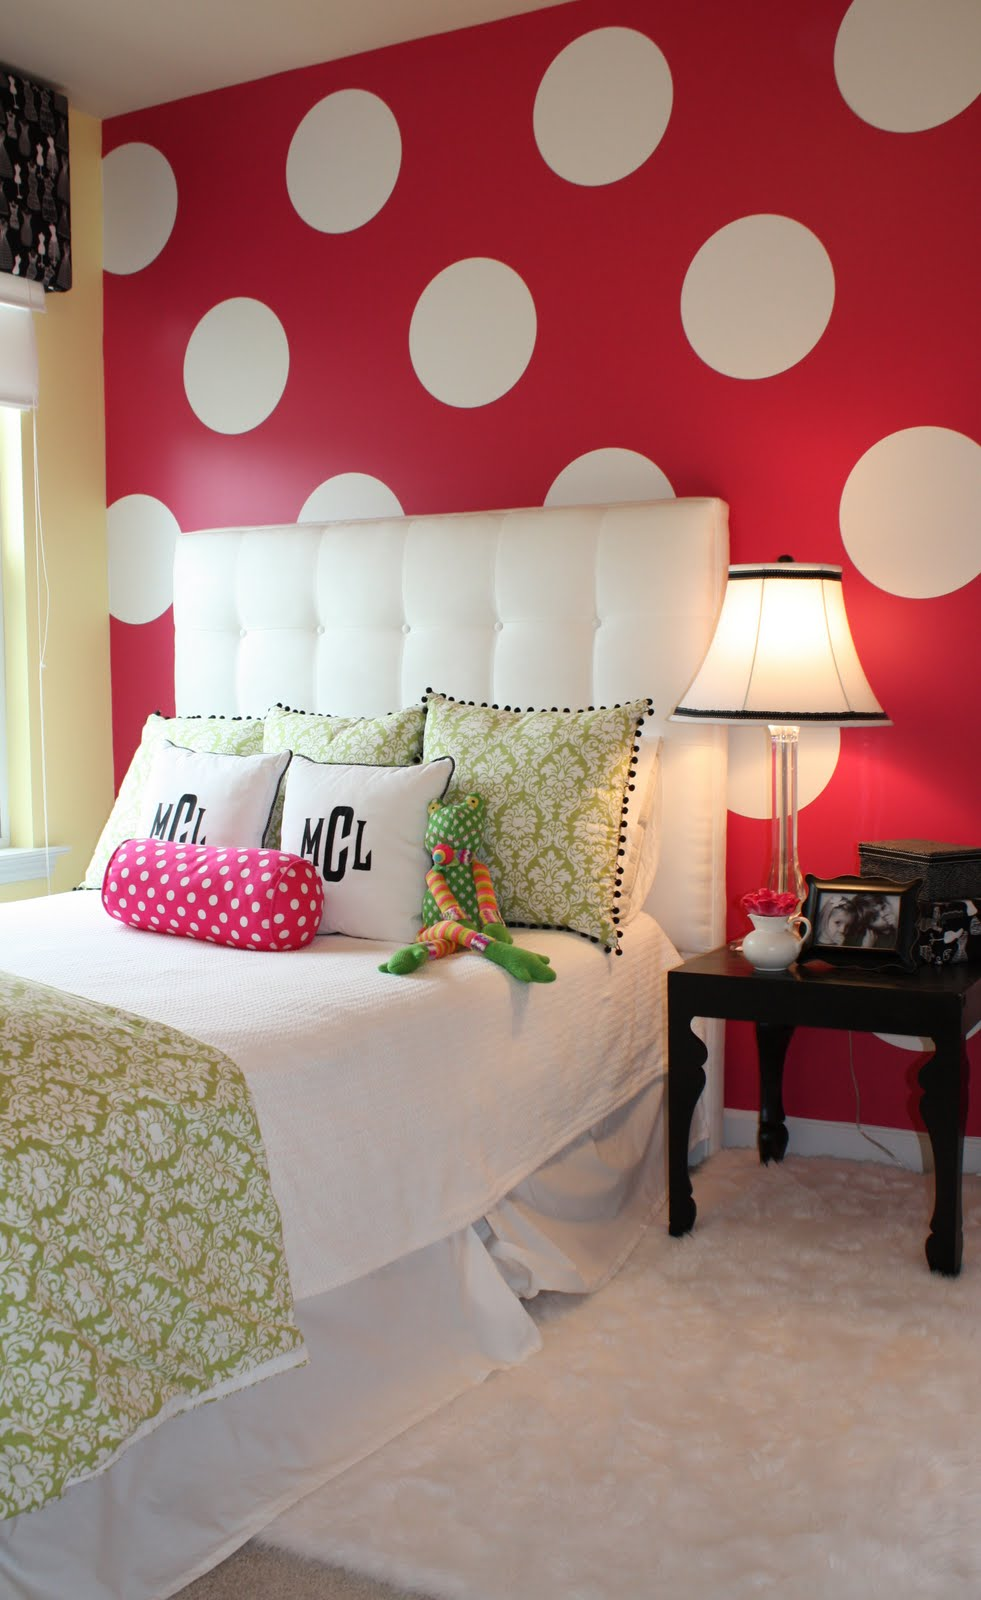 Ideas for shelby 39 s minnie mouse bedroom on pinterest Cute bedroom wall ideas